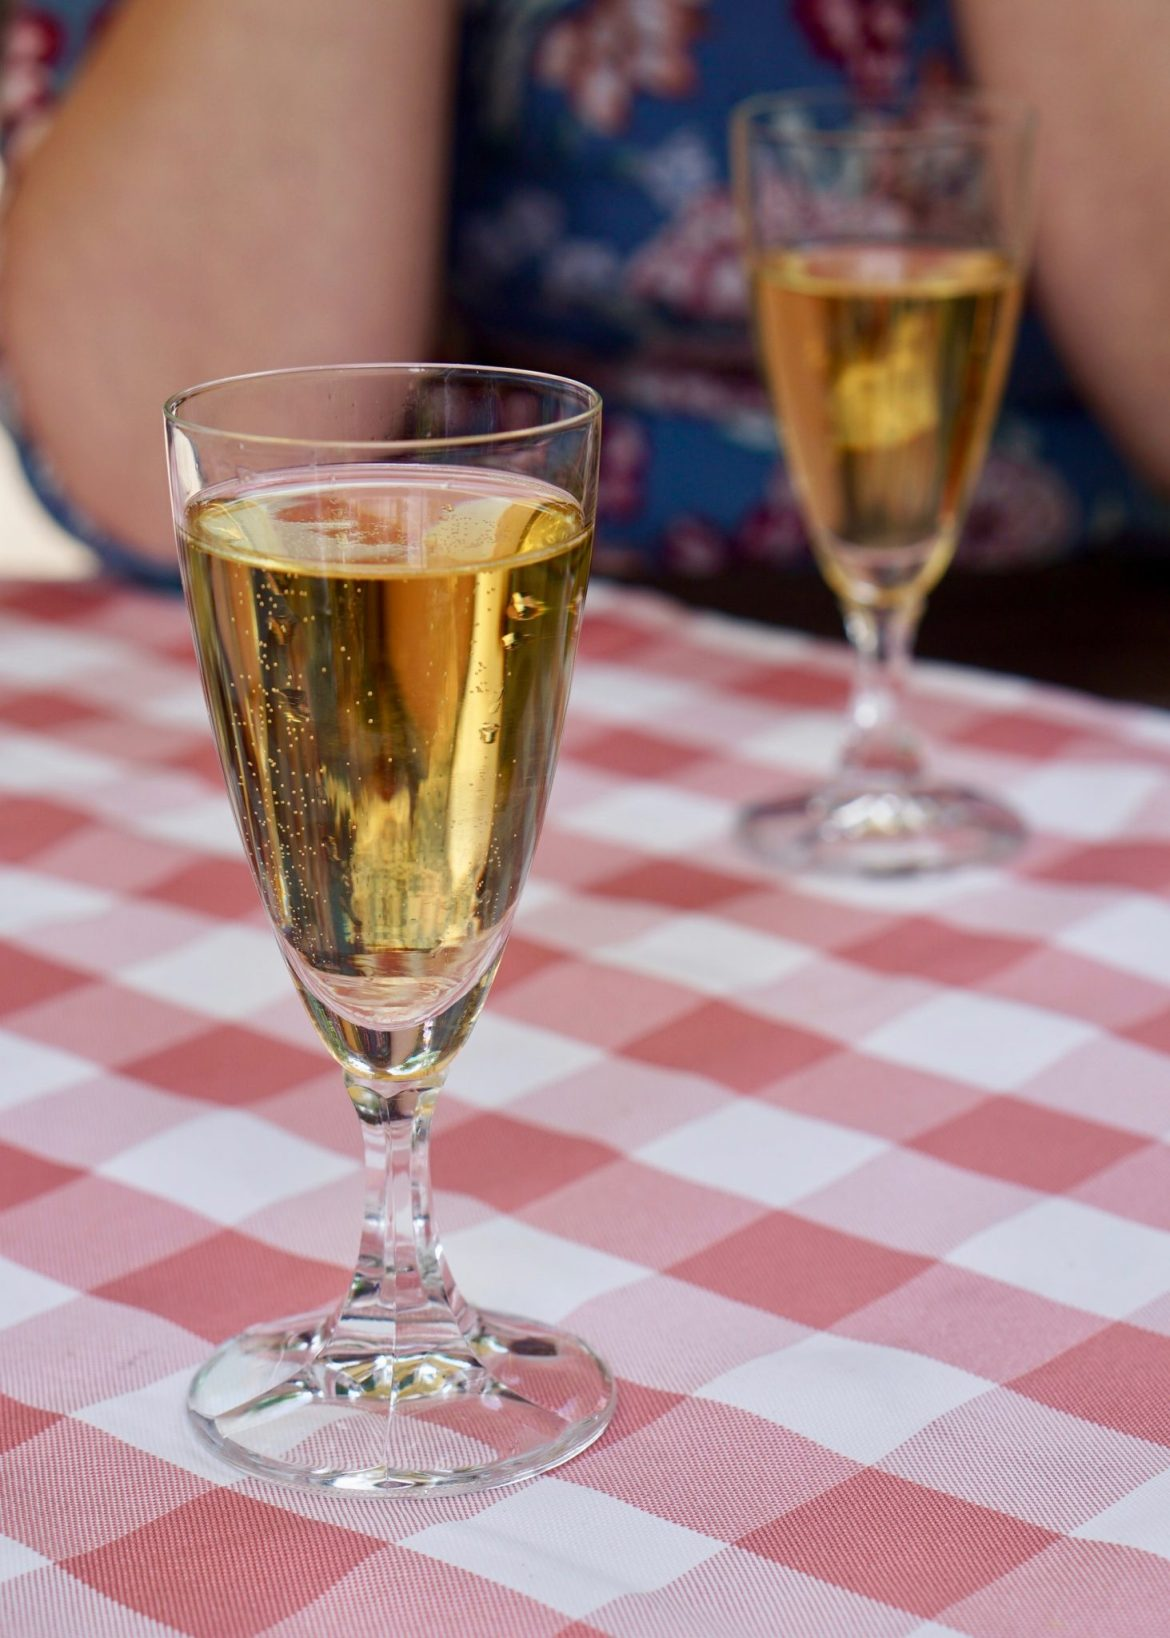 Two fluted glasses of Apfelsecco on a red and white checked tablecloth